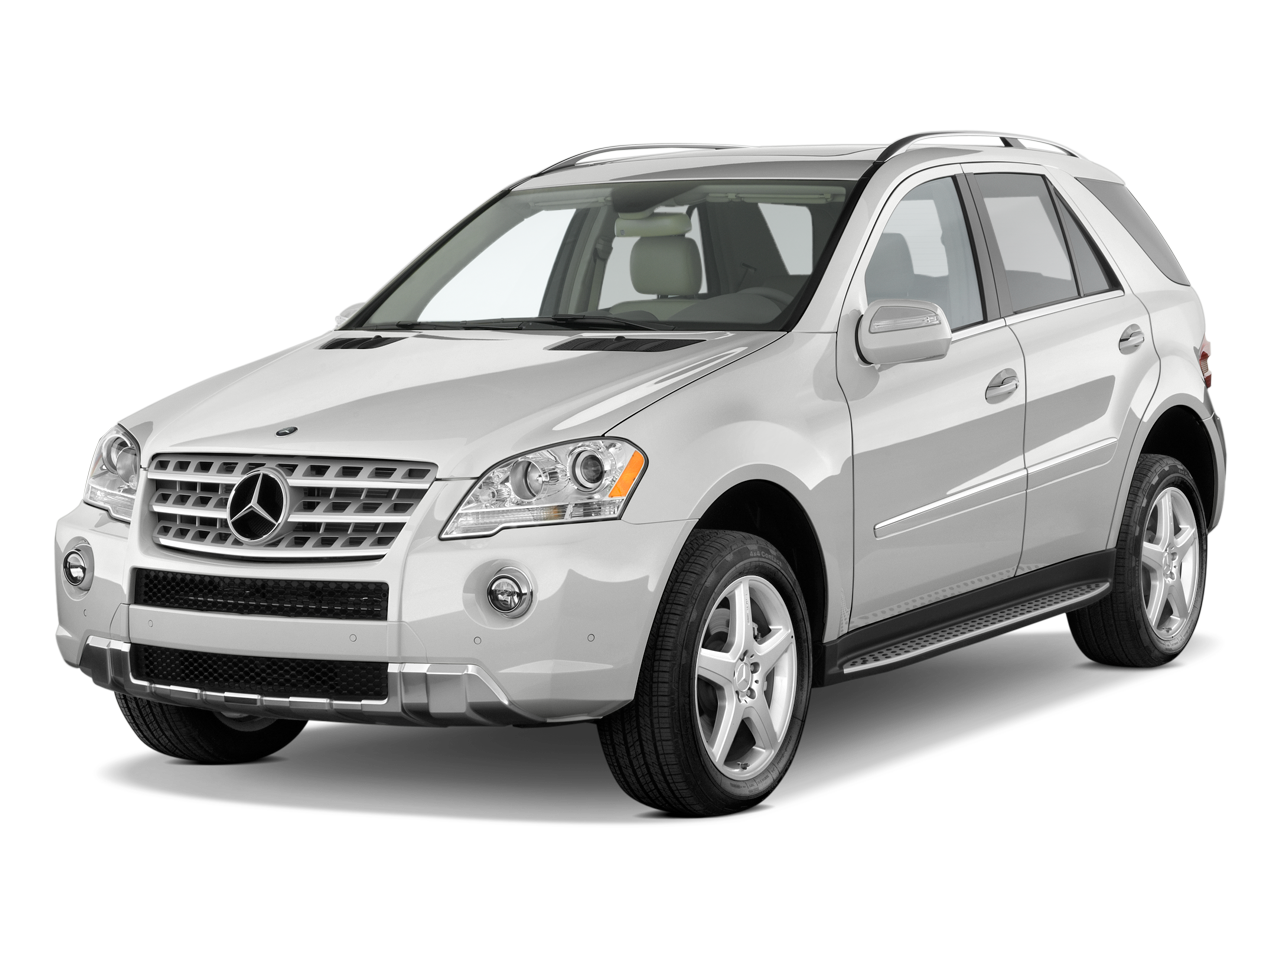 2009 mercedes benz ml320 bluetec mercedes benz crossover. Black Bedroom Furniture Sets. Home Design Ideas